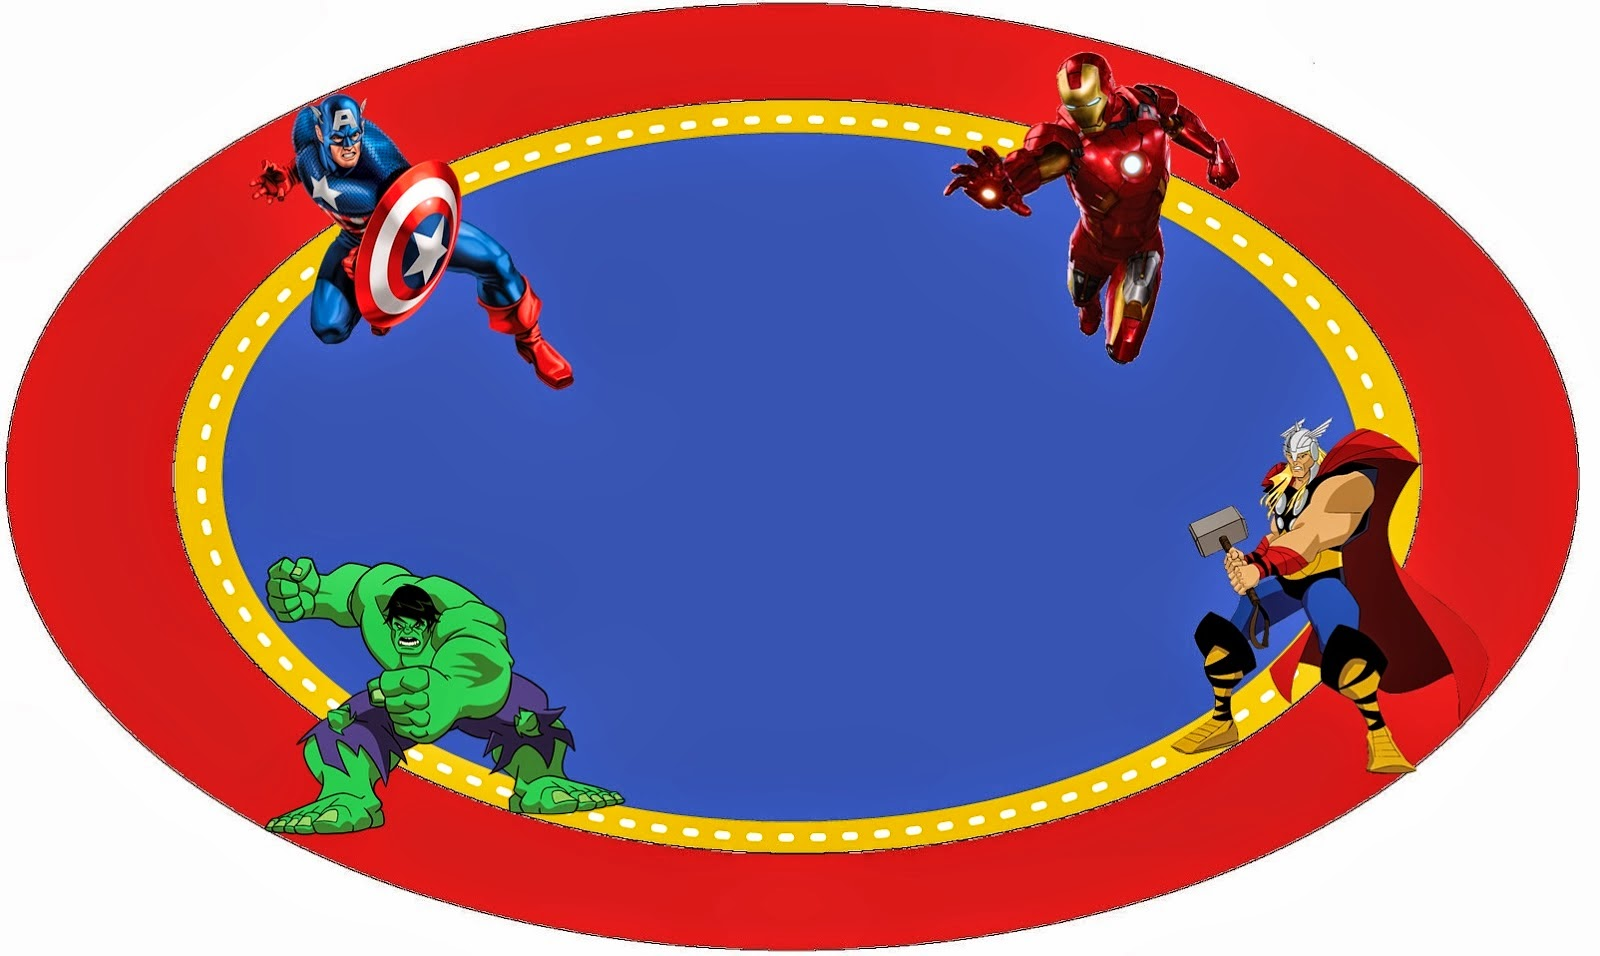 Avengers Free Printable Kit. | Is it for PARTIES? Is it FREE? Is it CUTE? Has QUALITY? It´s HERE ...